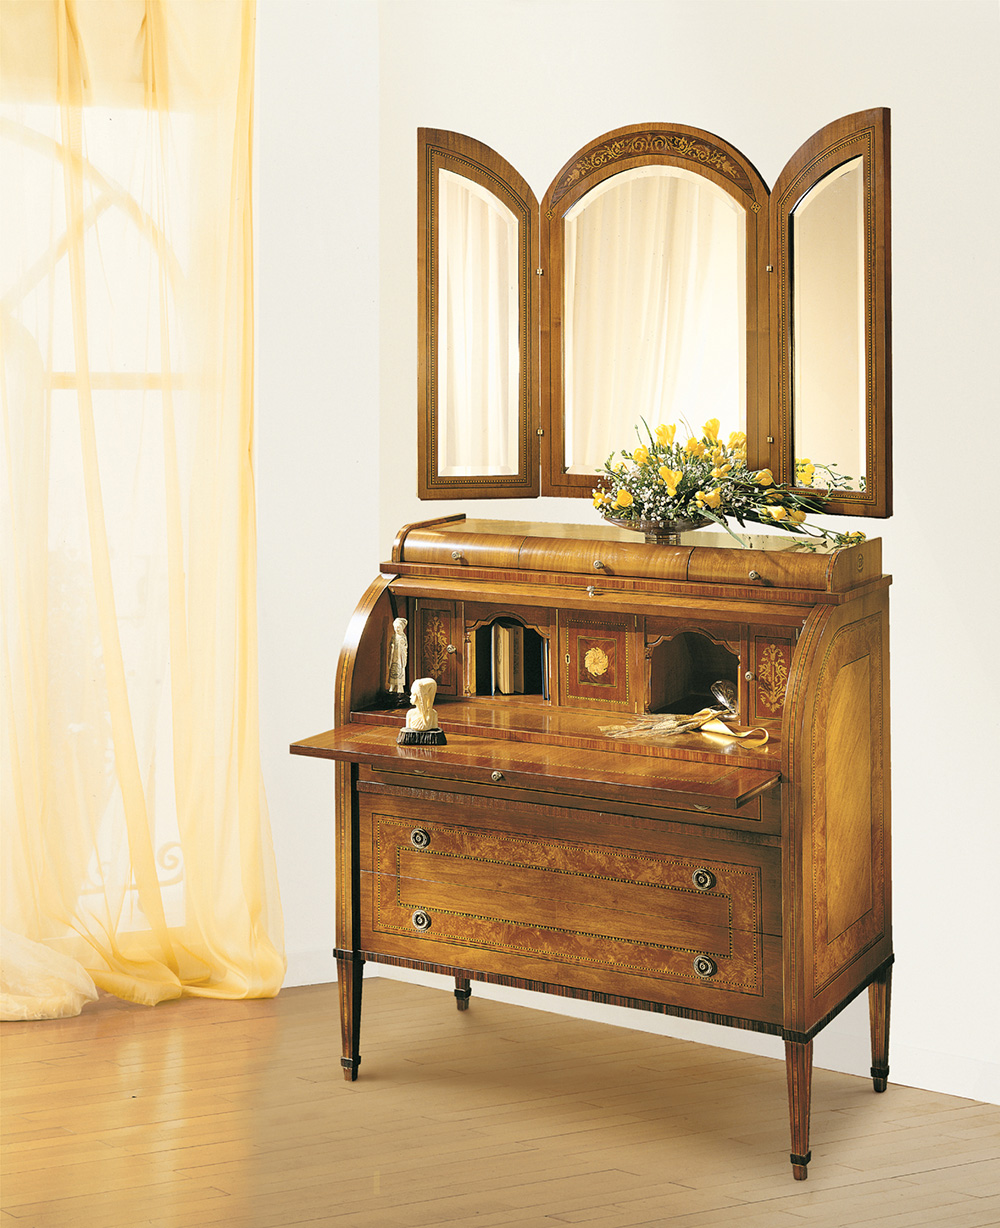 Sideboard Vitrine Galstian Furniture Categories Sideboards Console Table